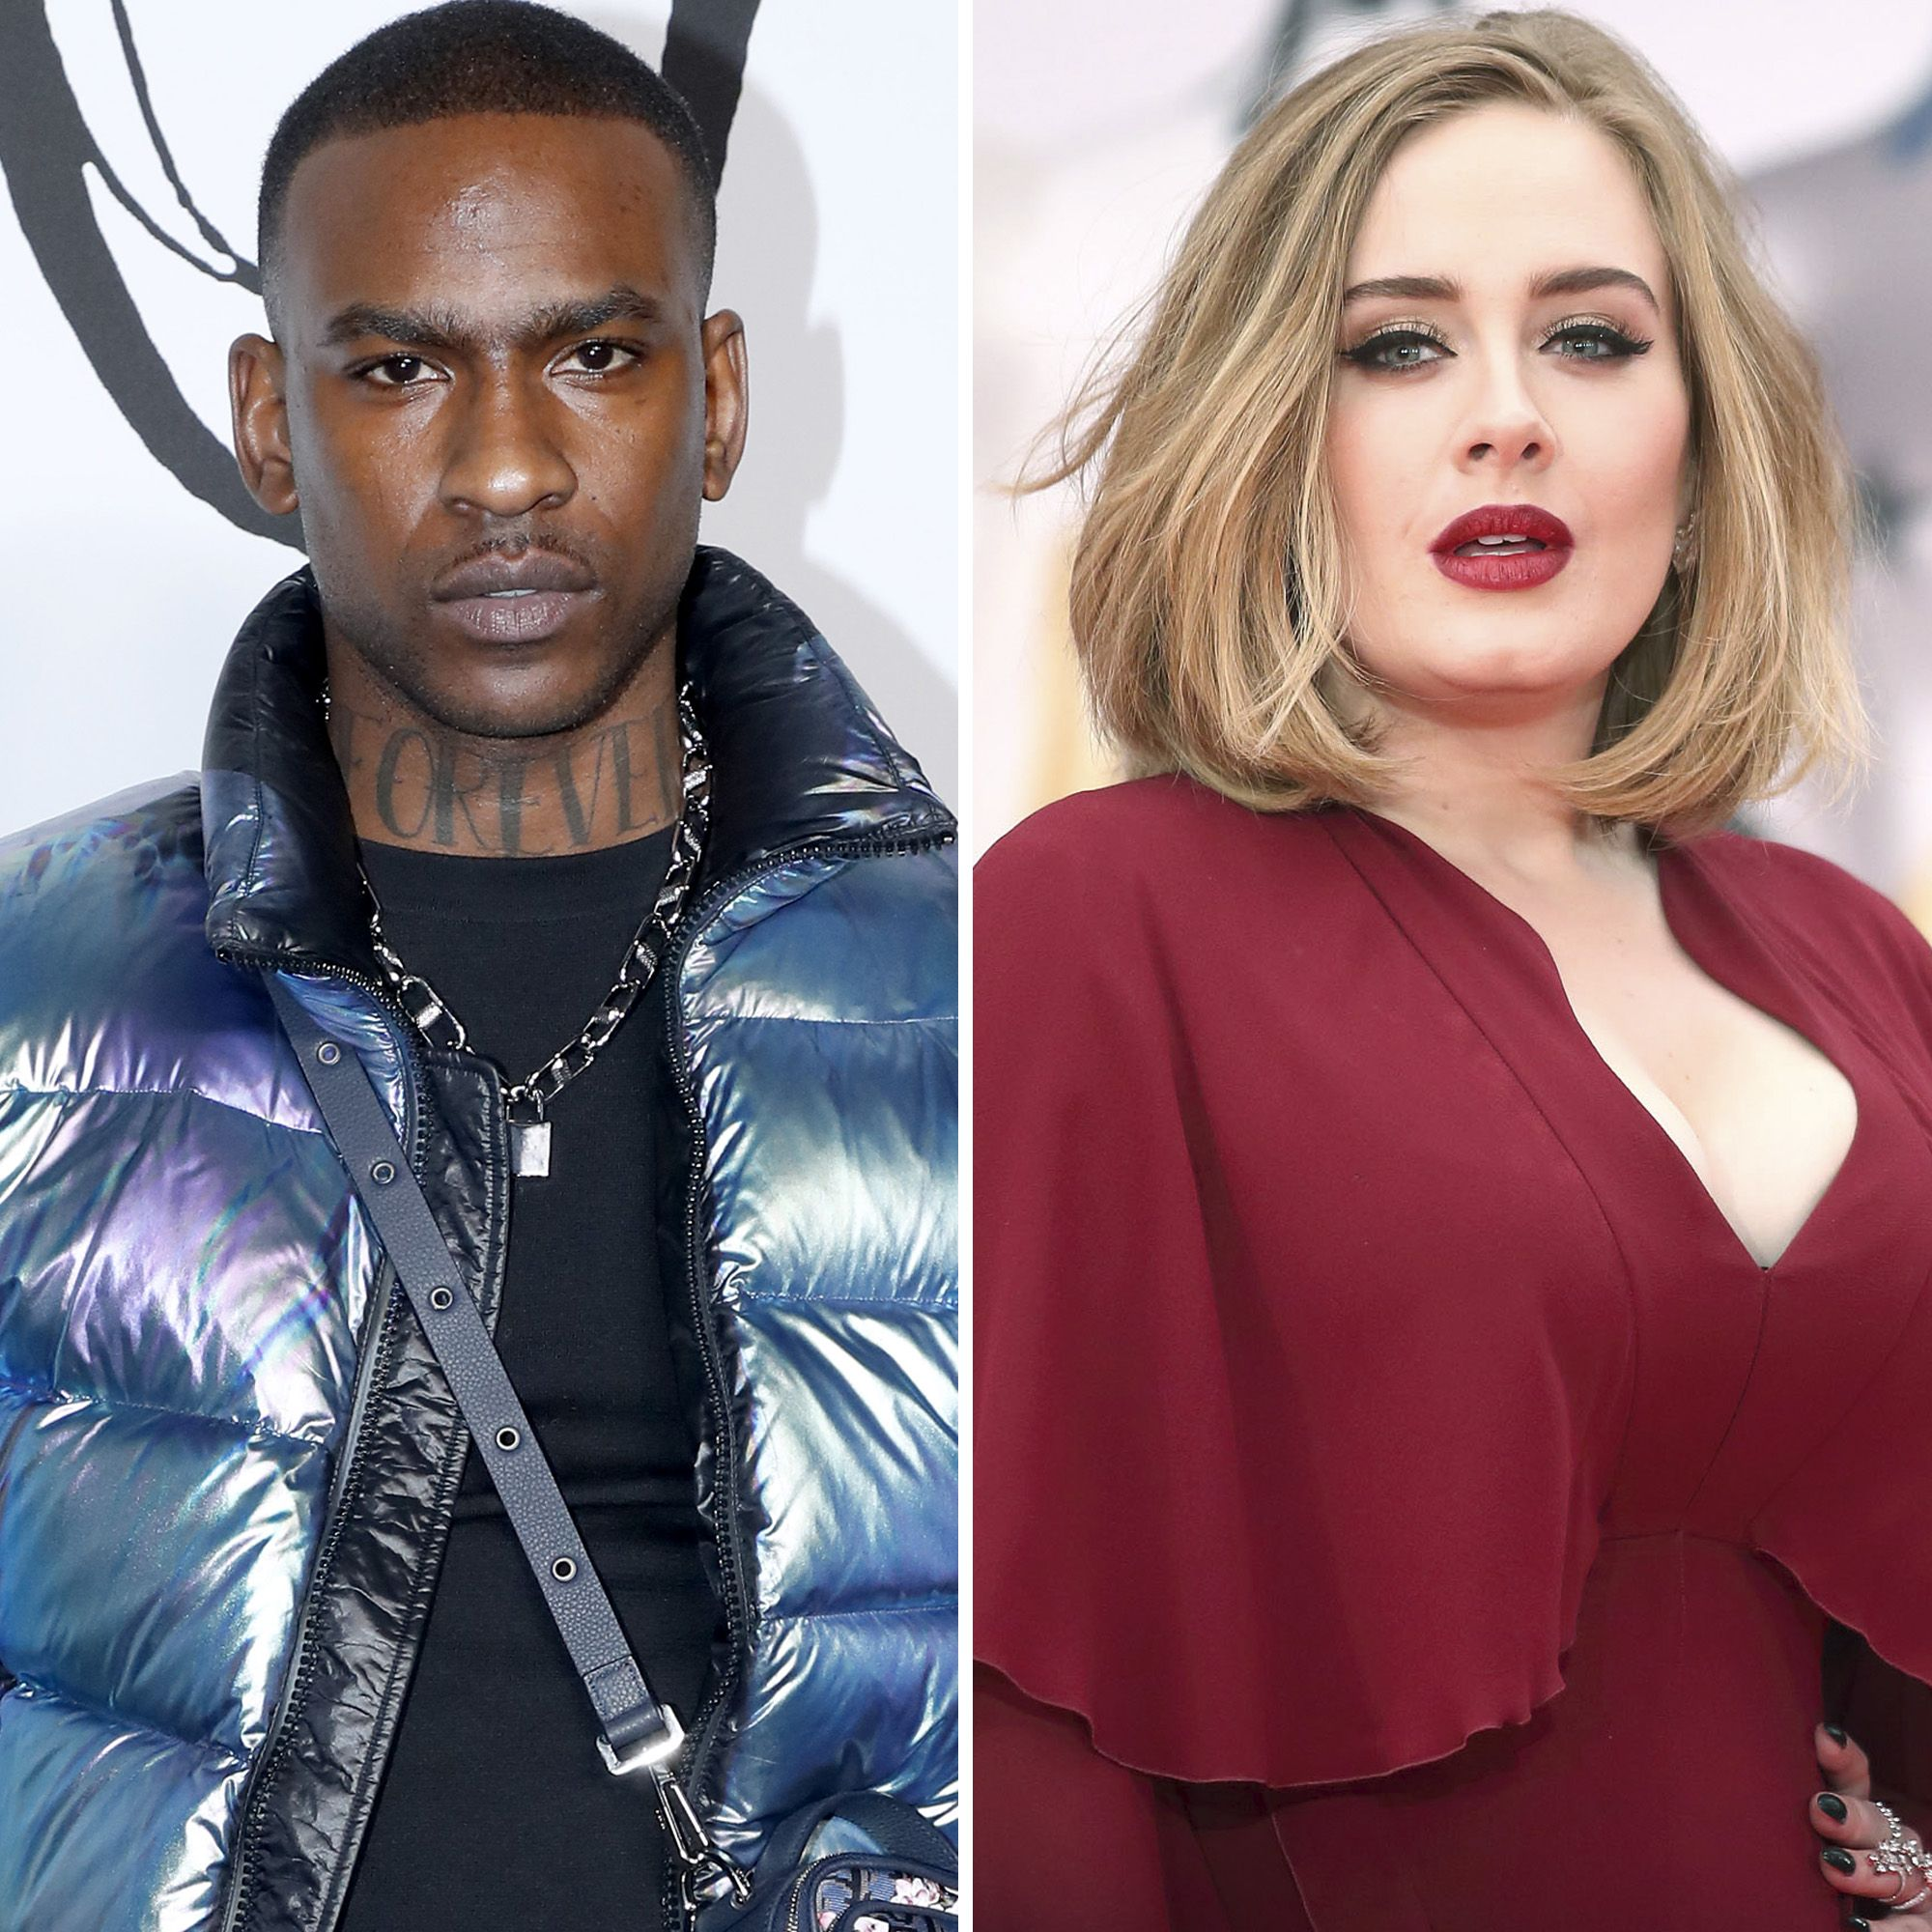 Adele FLIRTS On Instagram -- Is This Her New Romance?